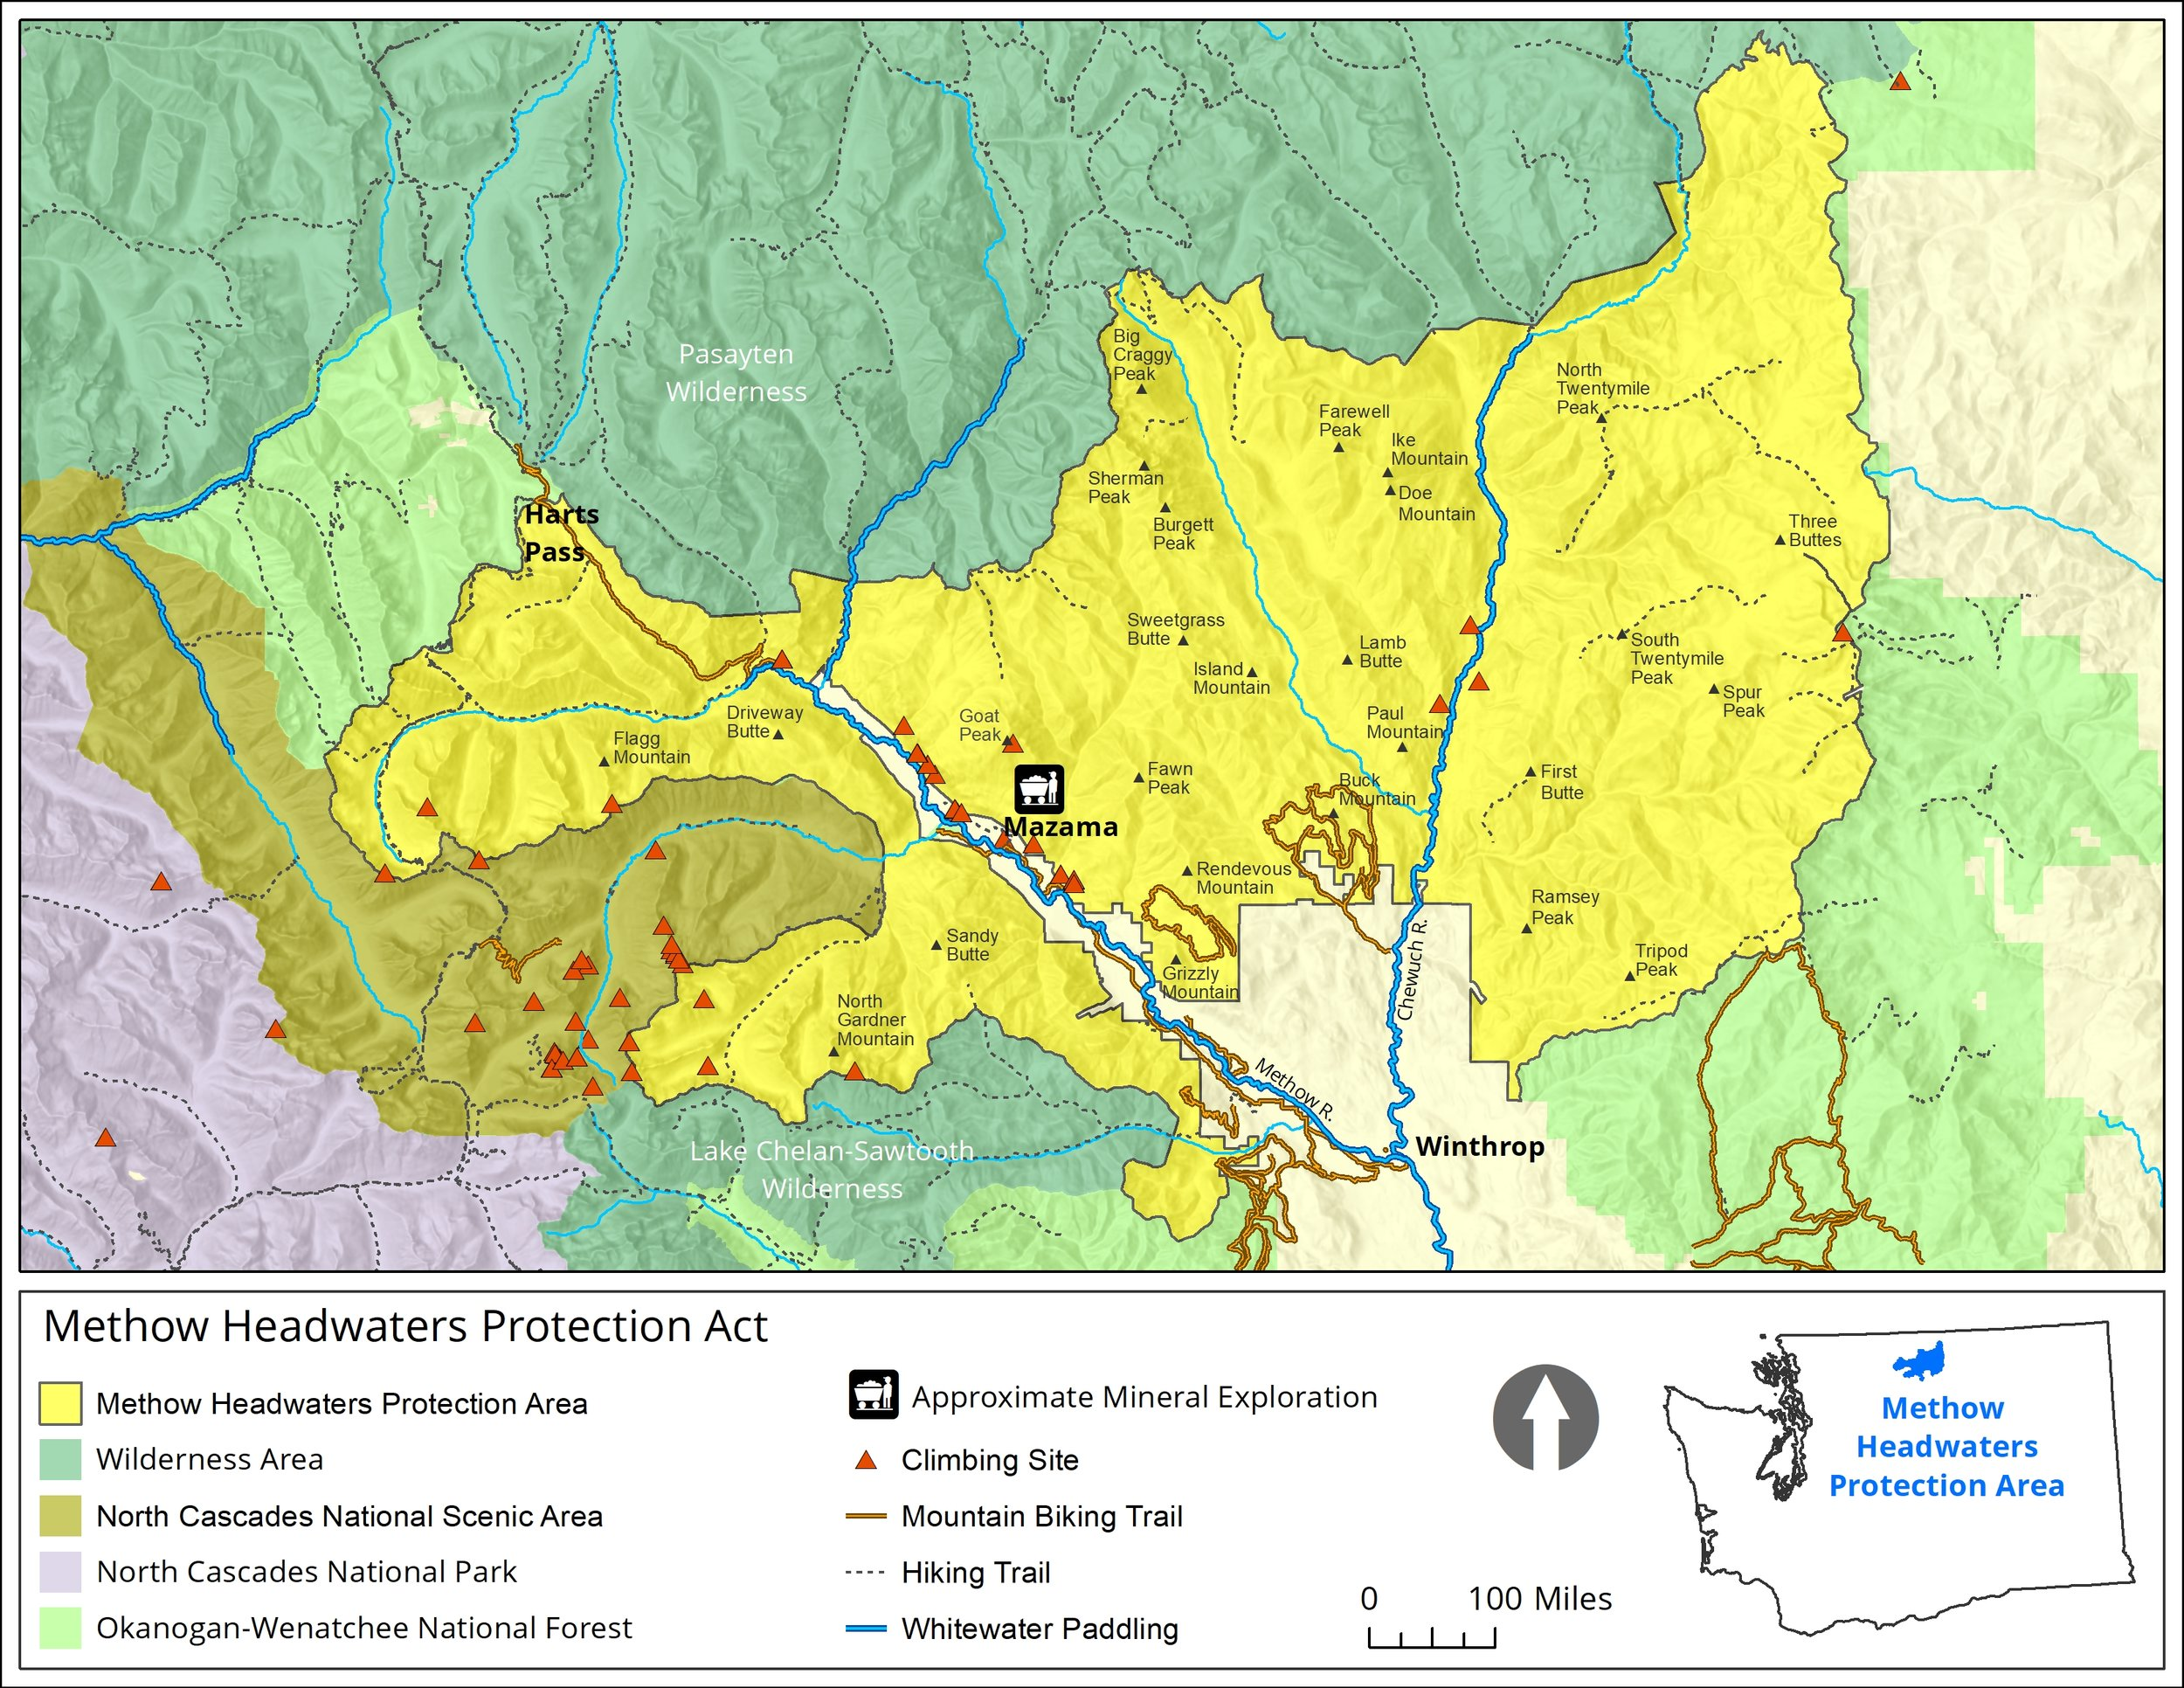 Methow Headwaters Protection Act